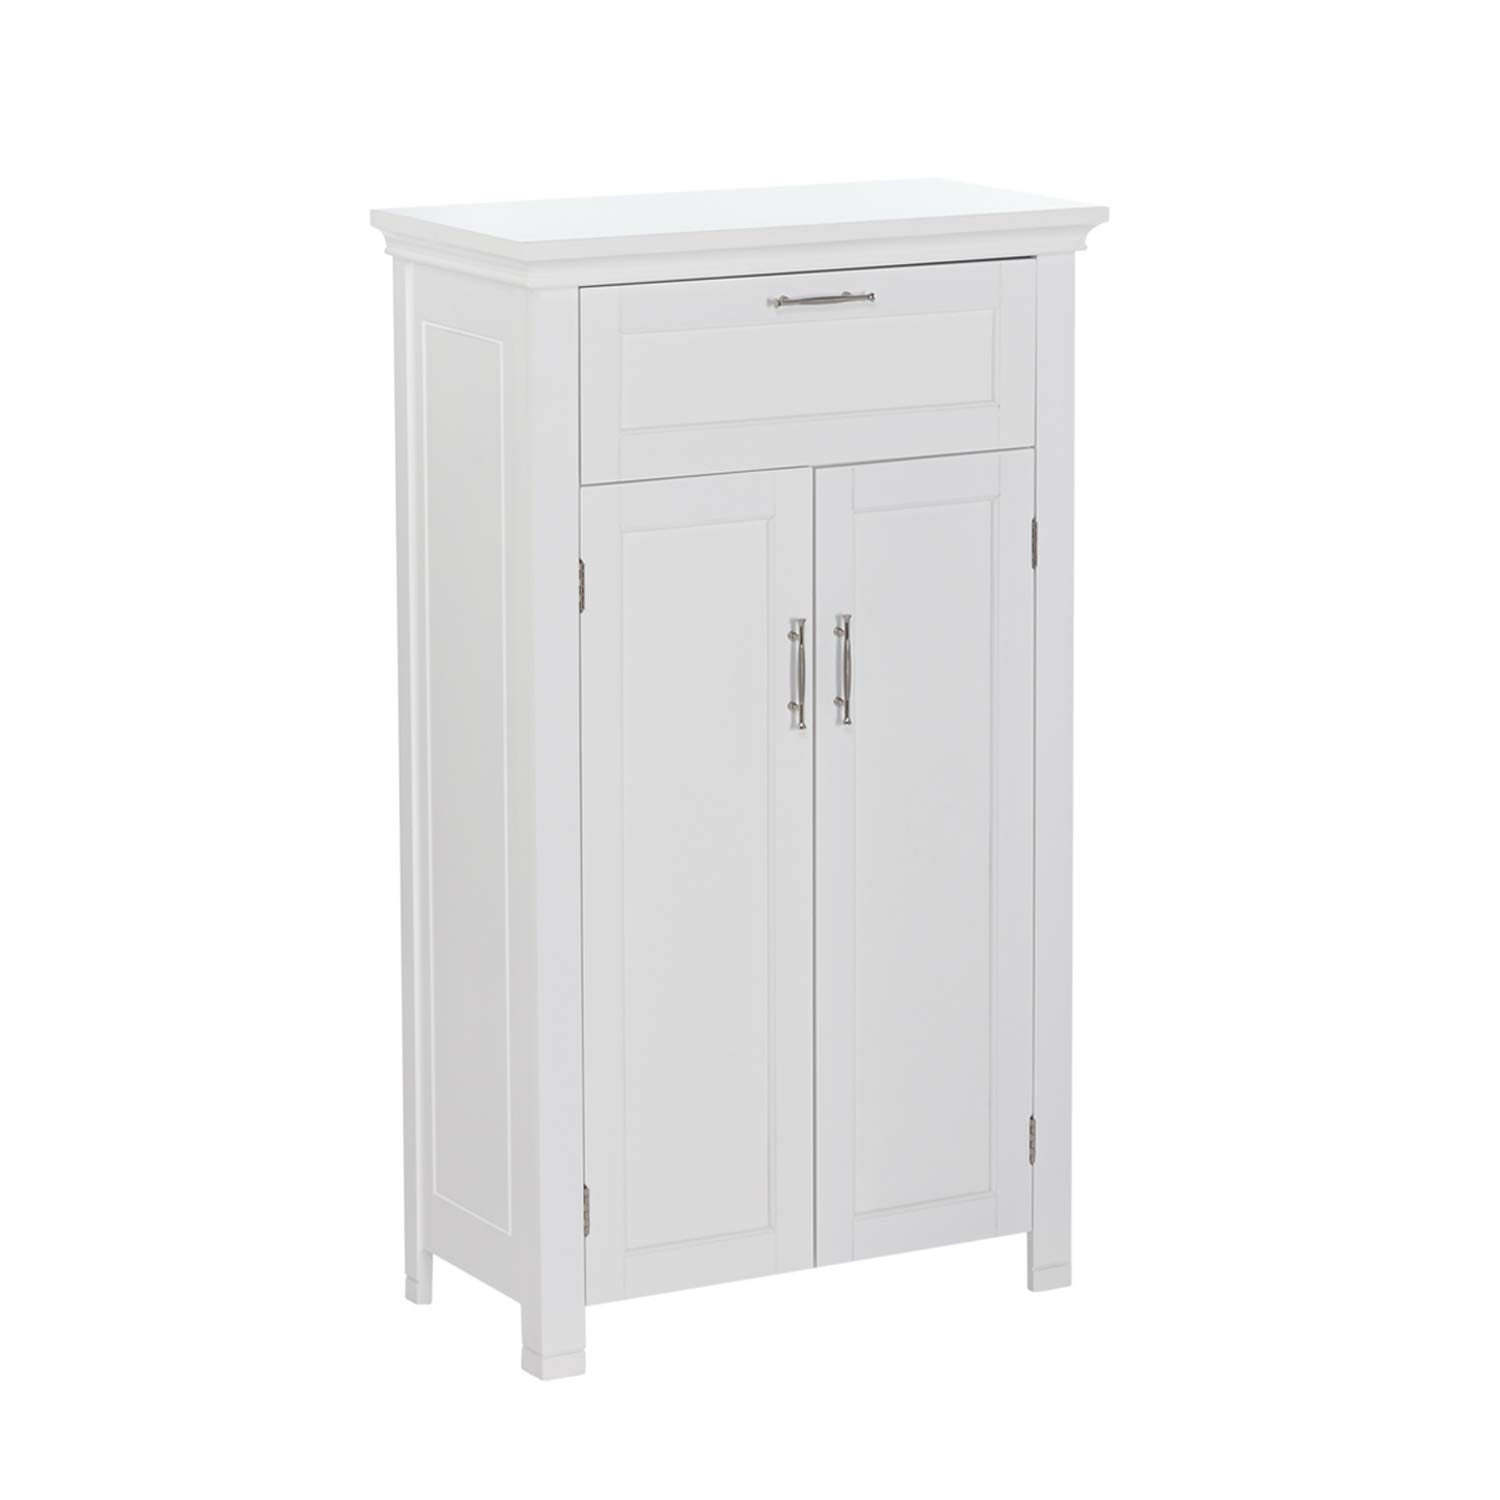 RiverRidge Somerset Collection Two-Door Floor Cabinet, White